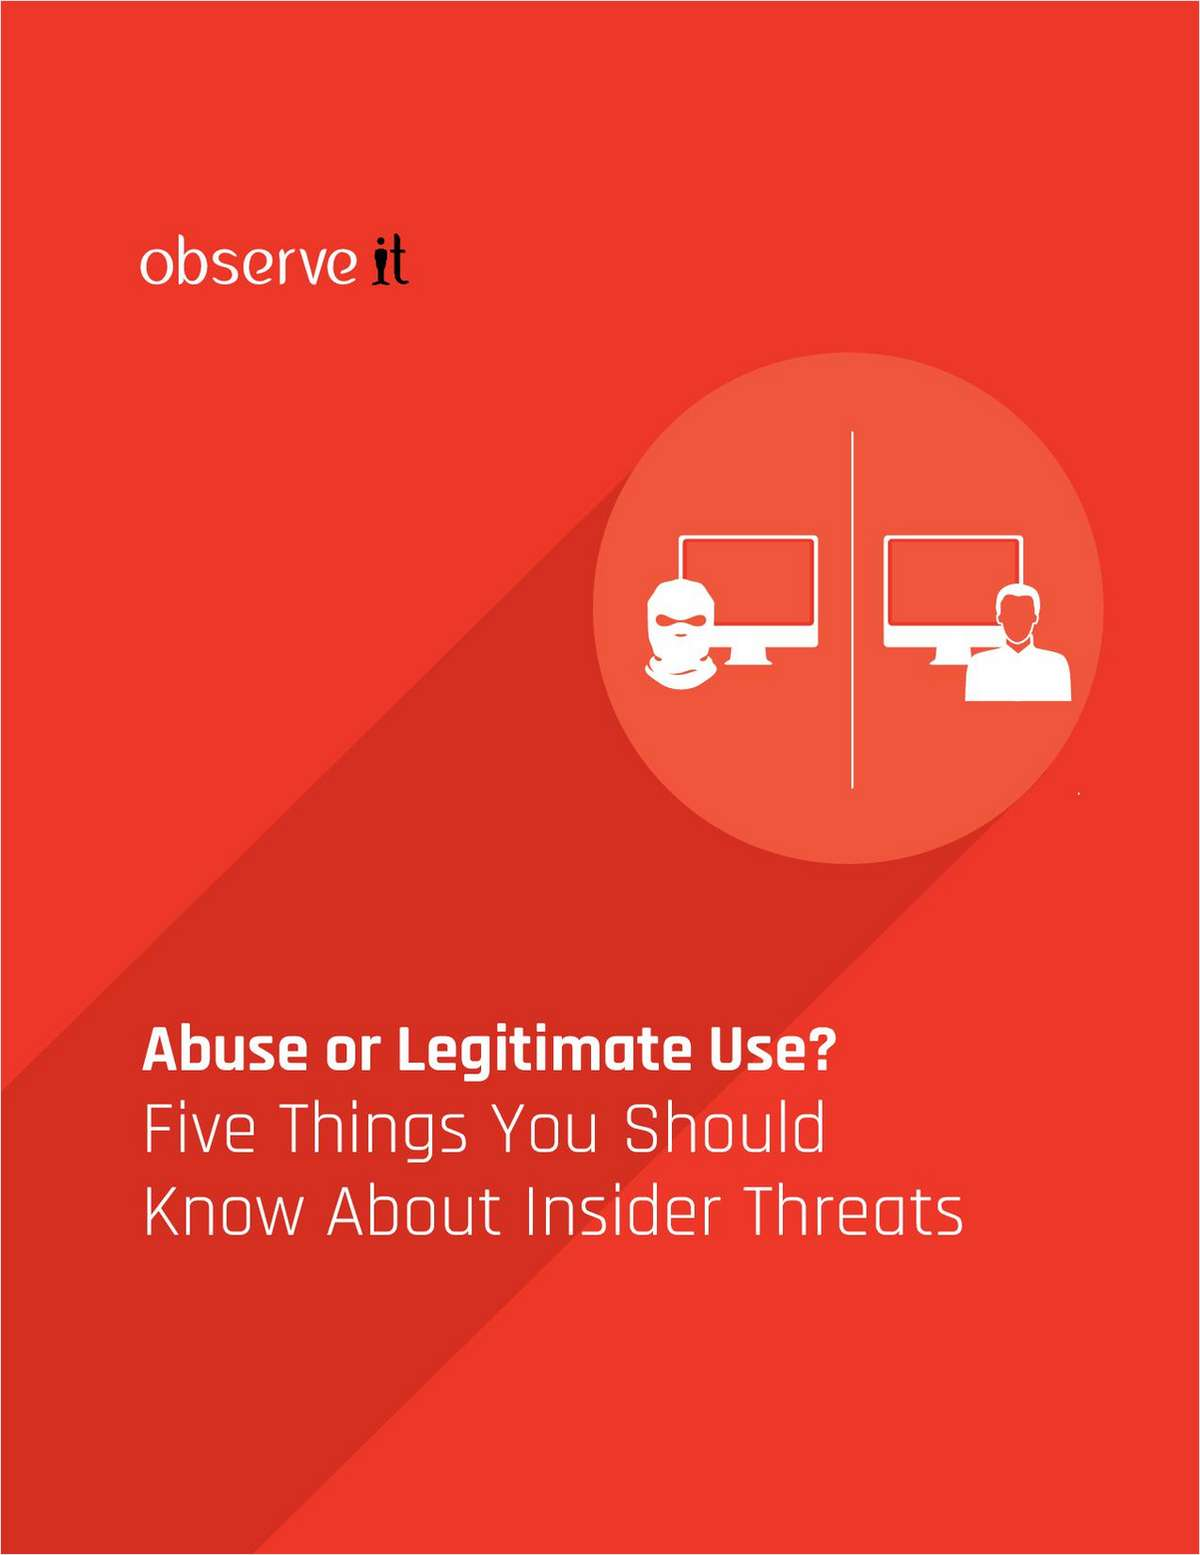 Five Things You Should Know About Insider Threats